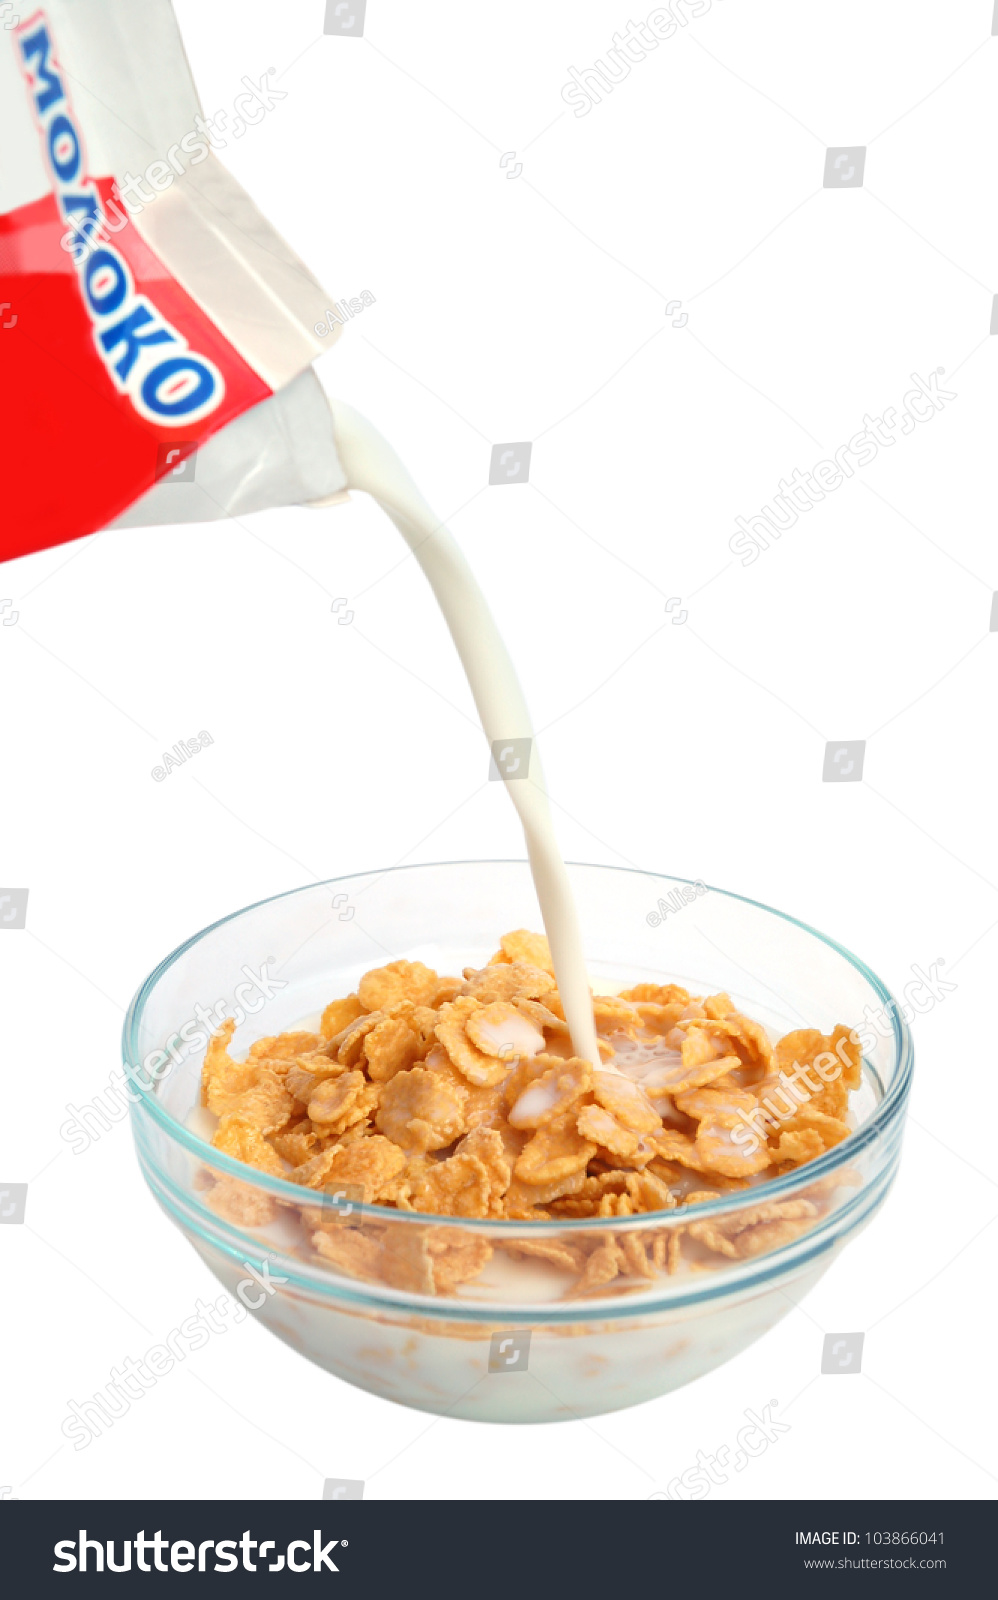 Bowl Of Cornflakes And Milk Bowl Of Cornfla...